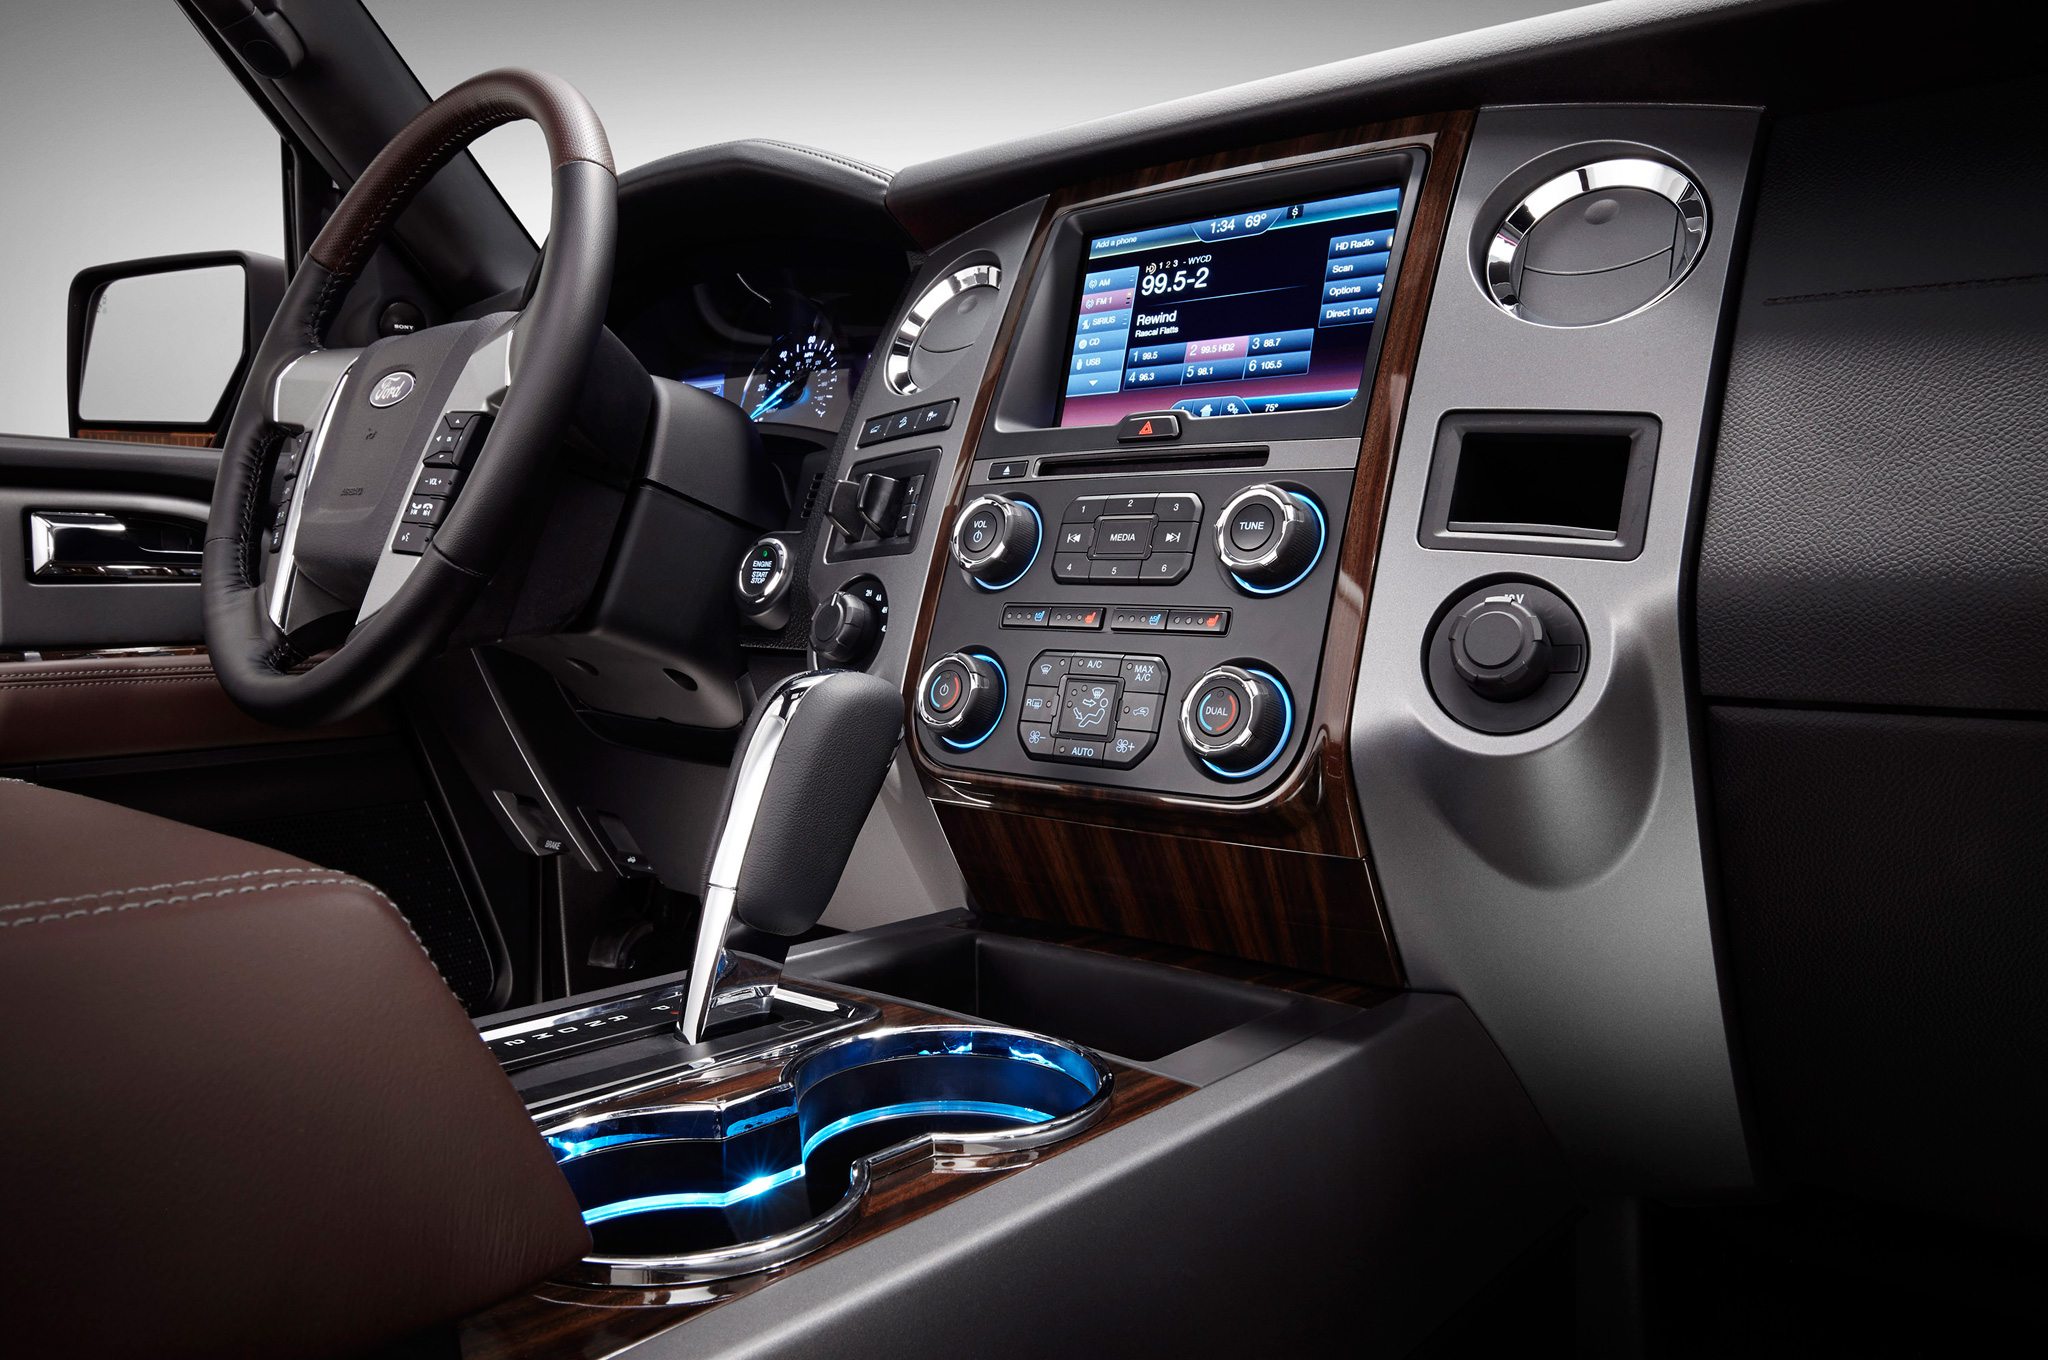 2015 Ford Expedition Dashboard And Head Unit (Photo 1 of 6)